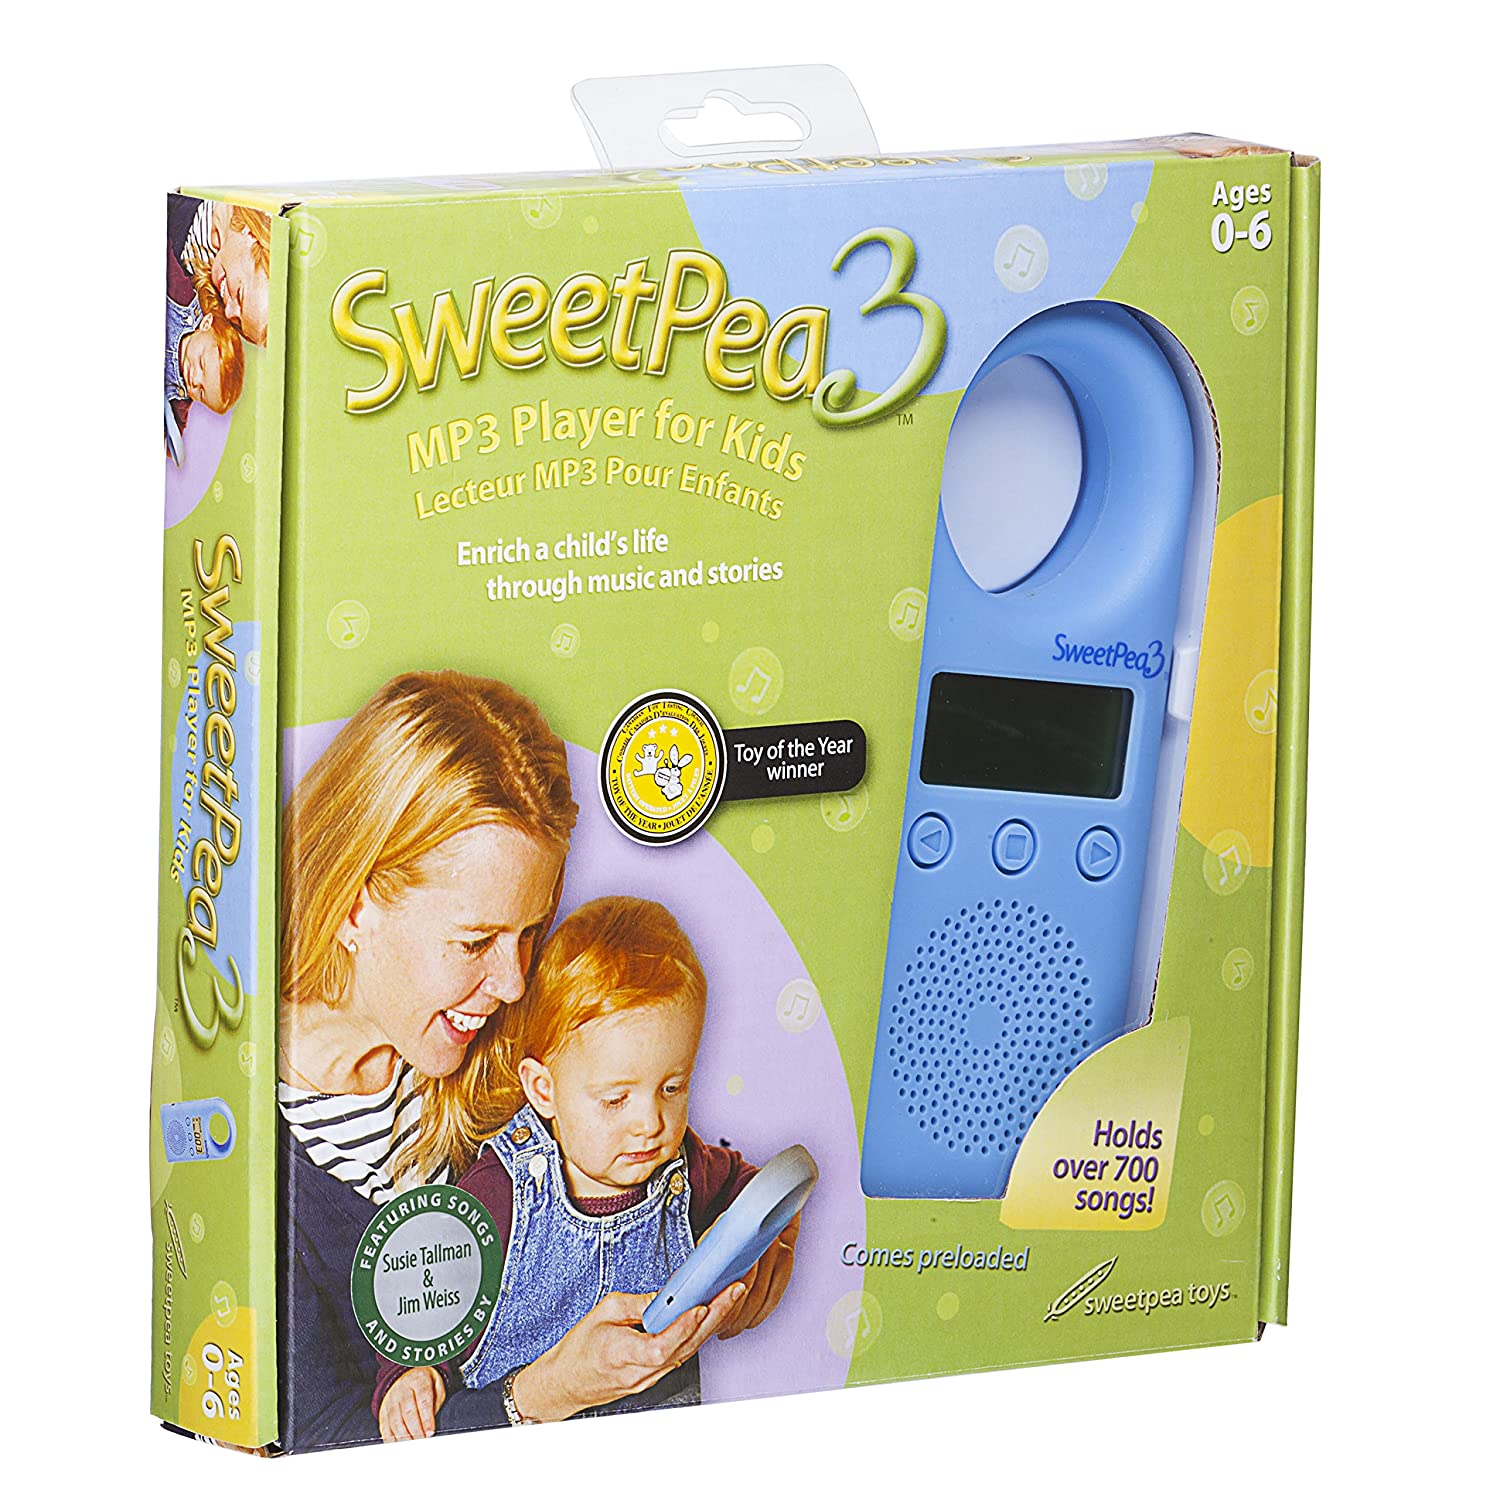 SWEETPEA SP3-103 MEDIAPLAYER DRIVERS FOR WINDOWS 8